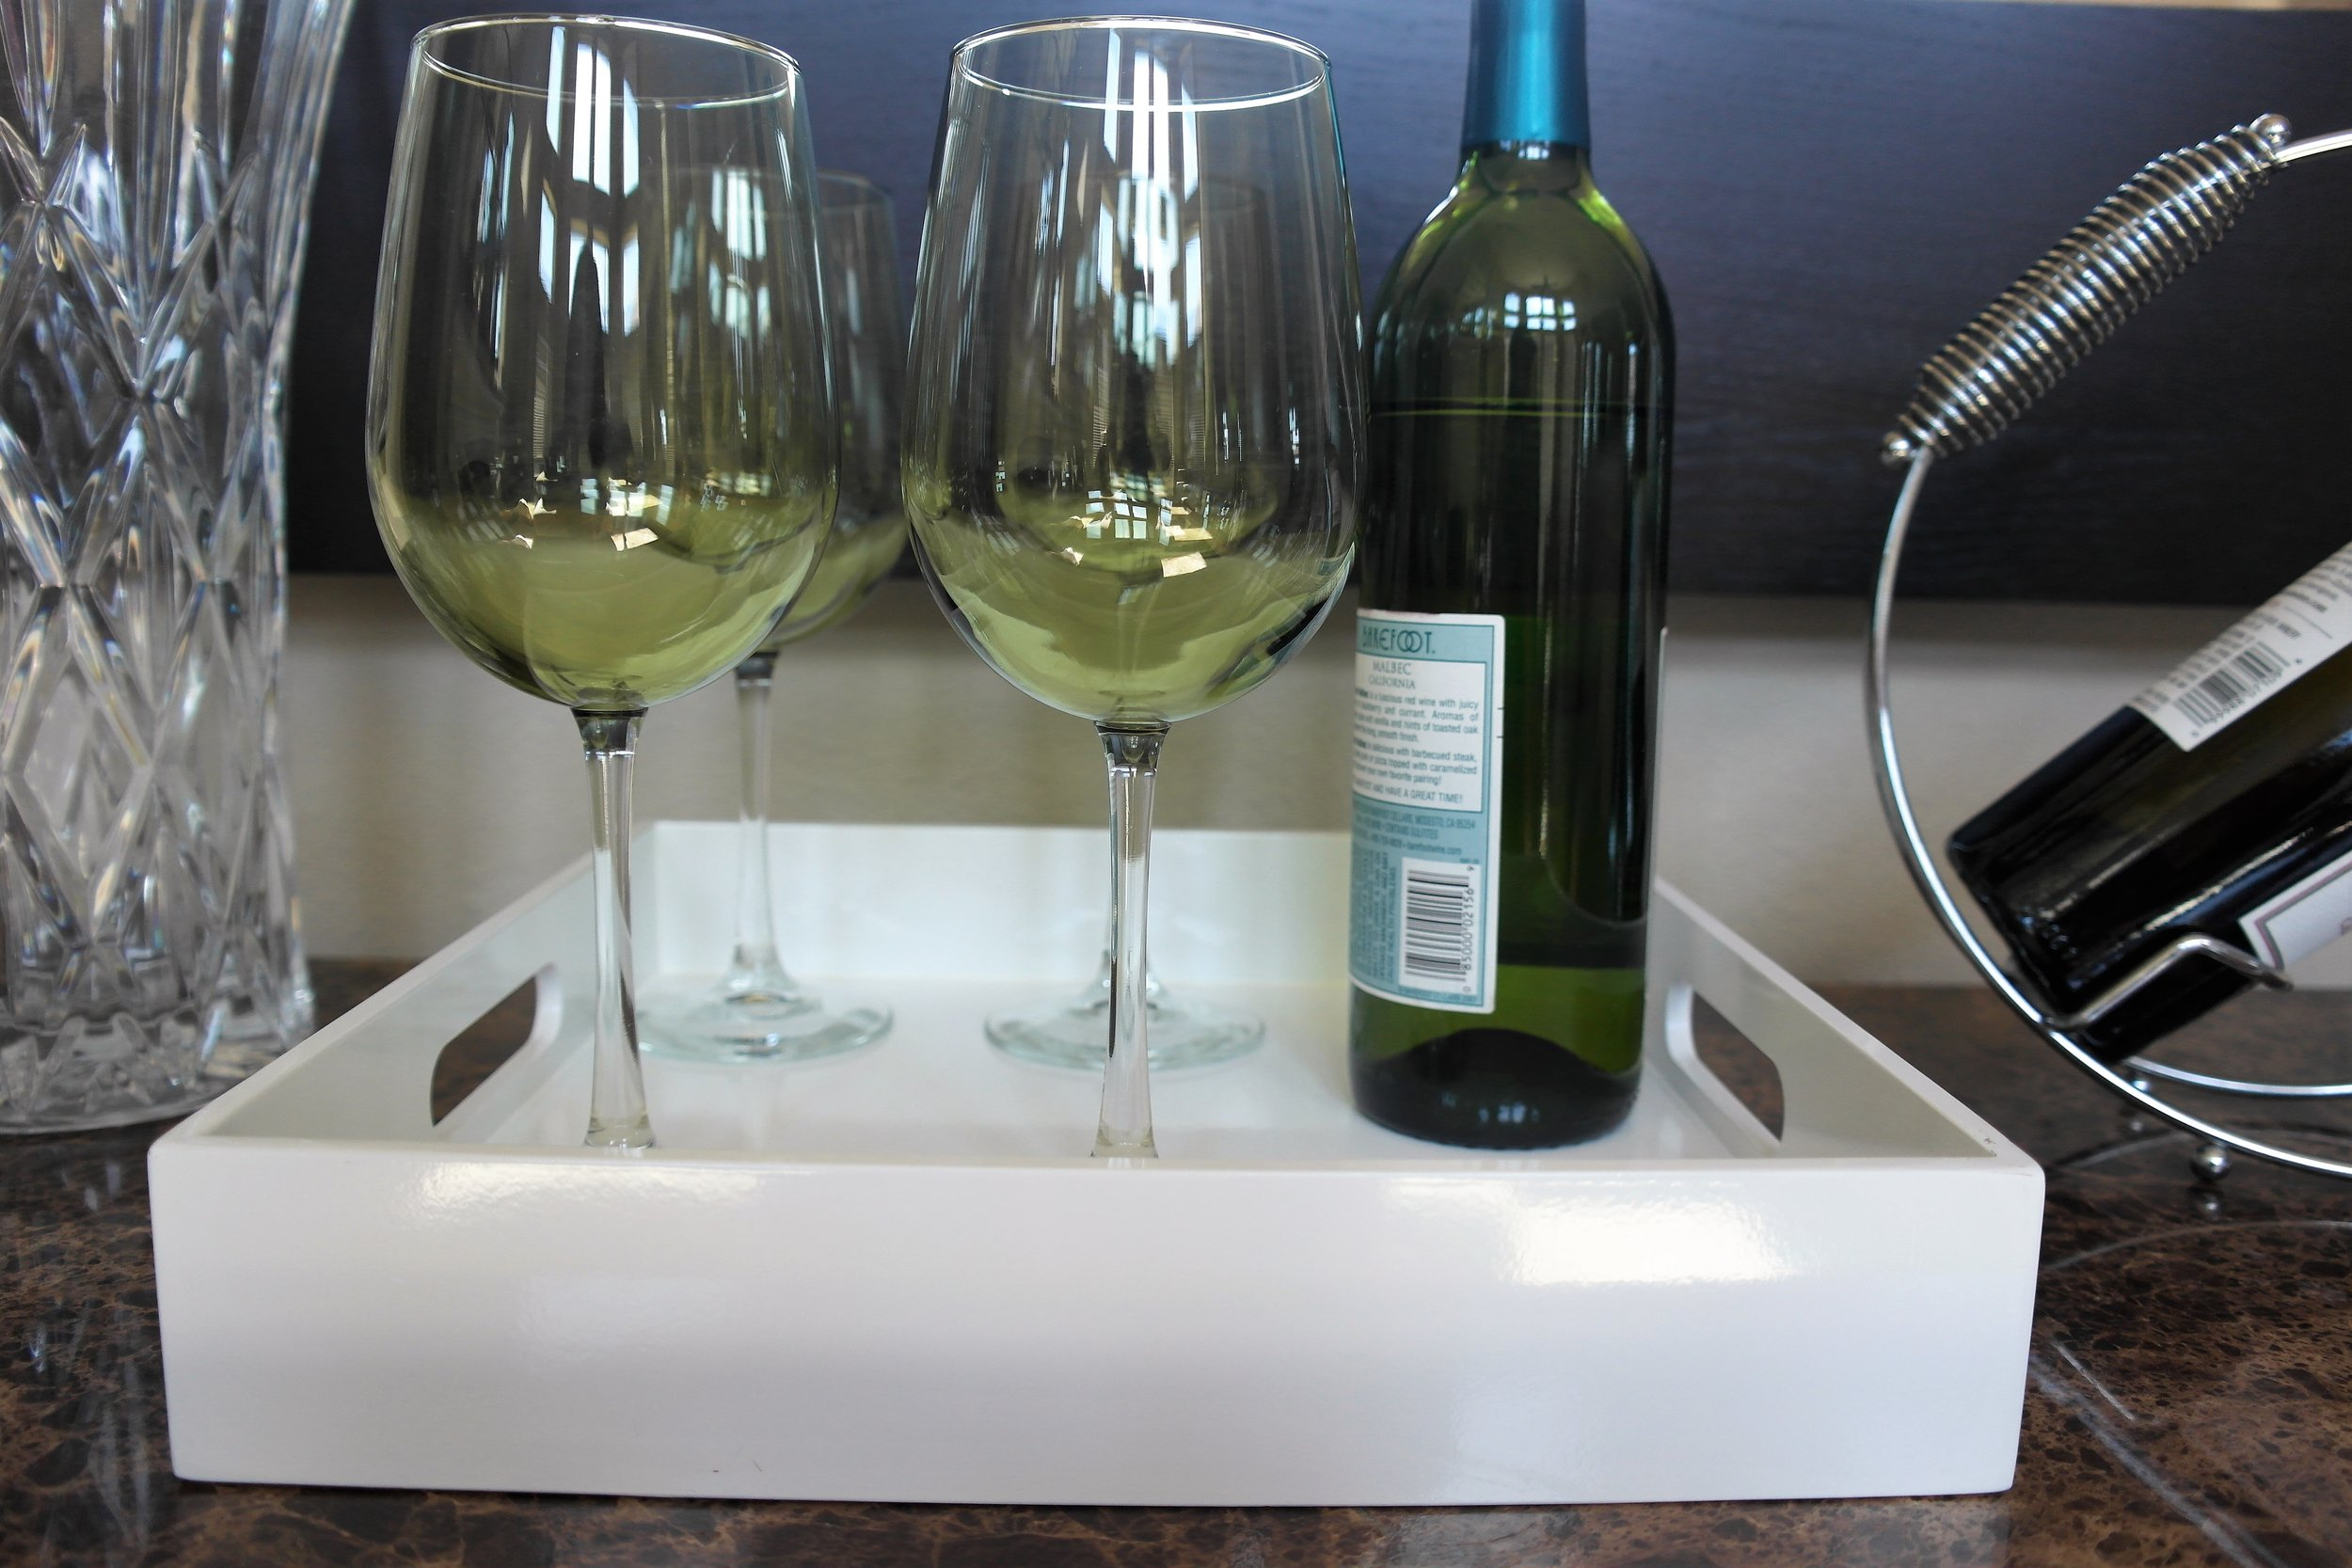 West Elm White Lacquer Tray    Here        | Olive Tint Wine glasses similar    Here